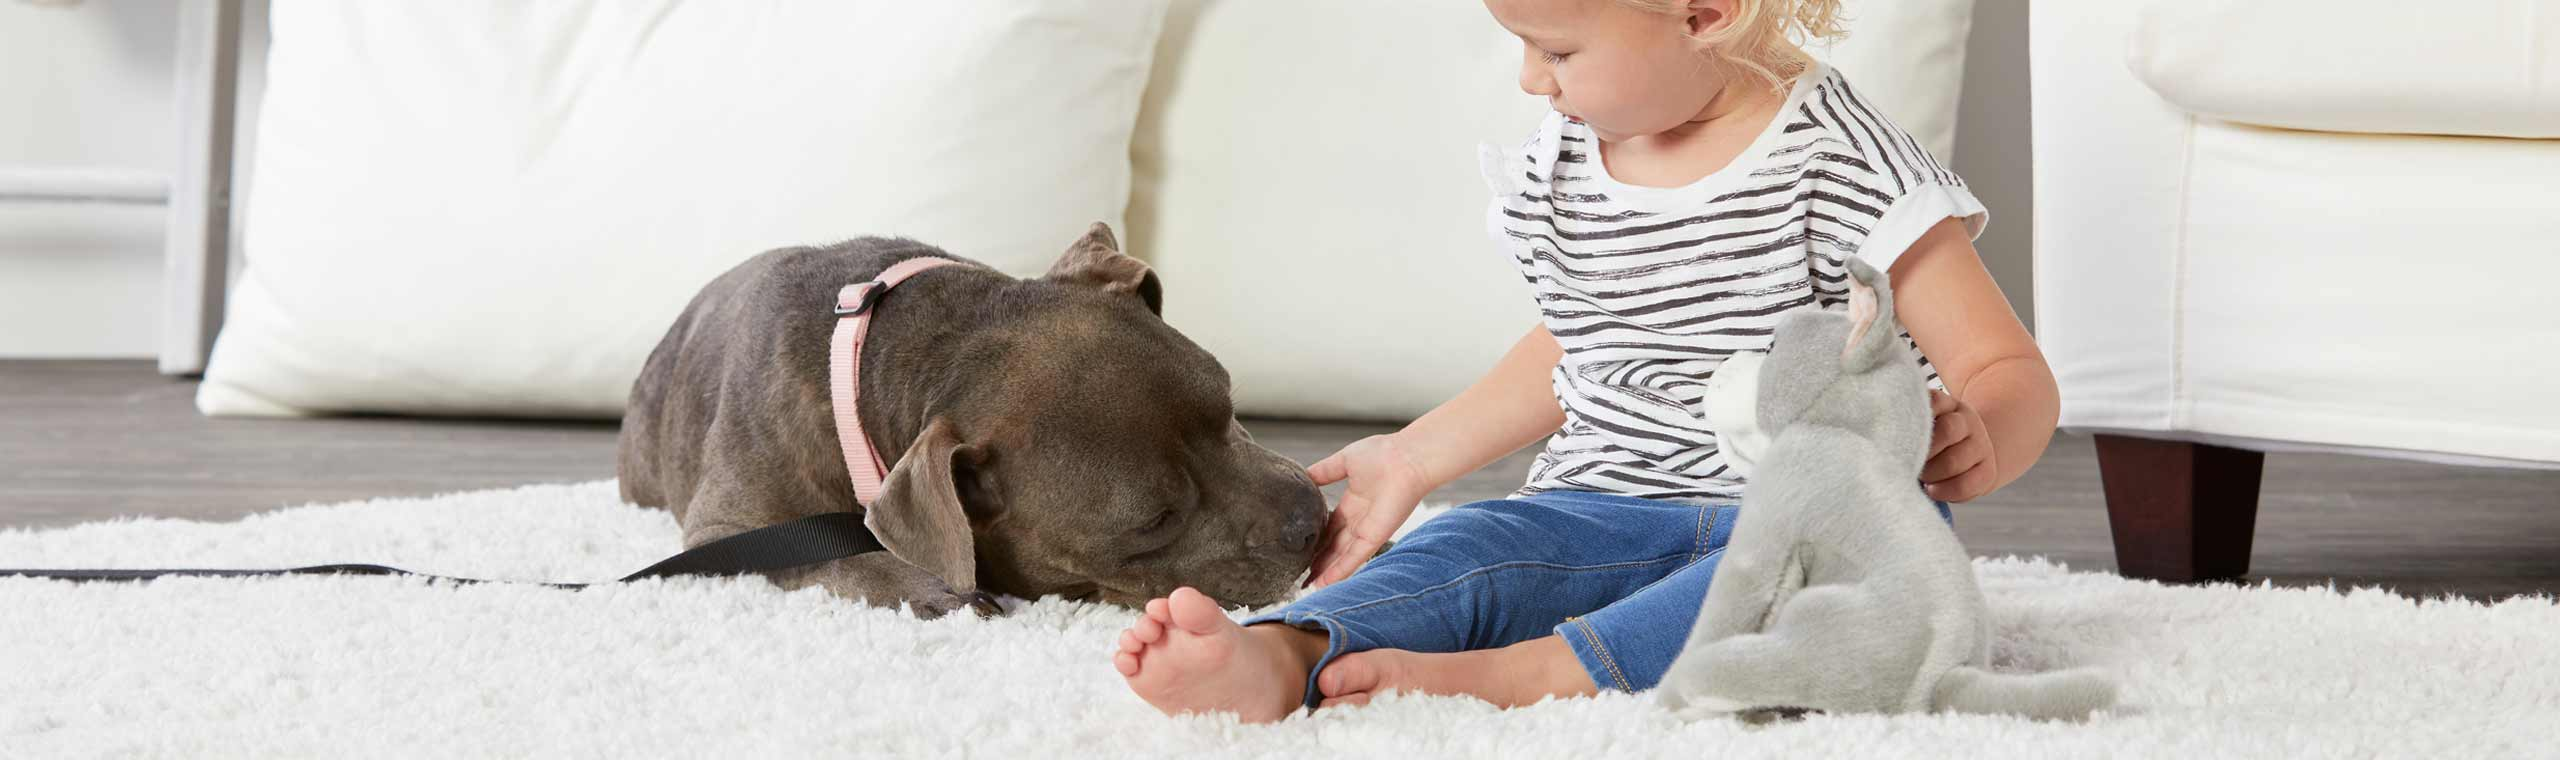 Young girl playing with stuffed dog animal next to gray dog